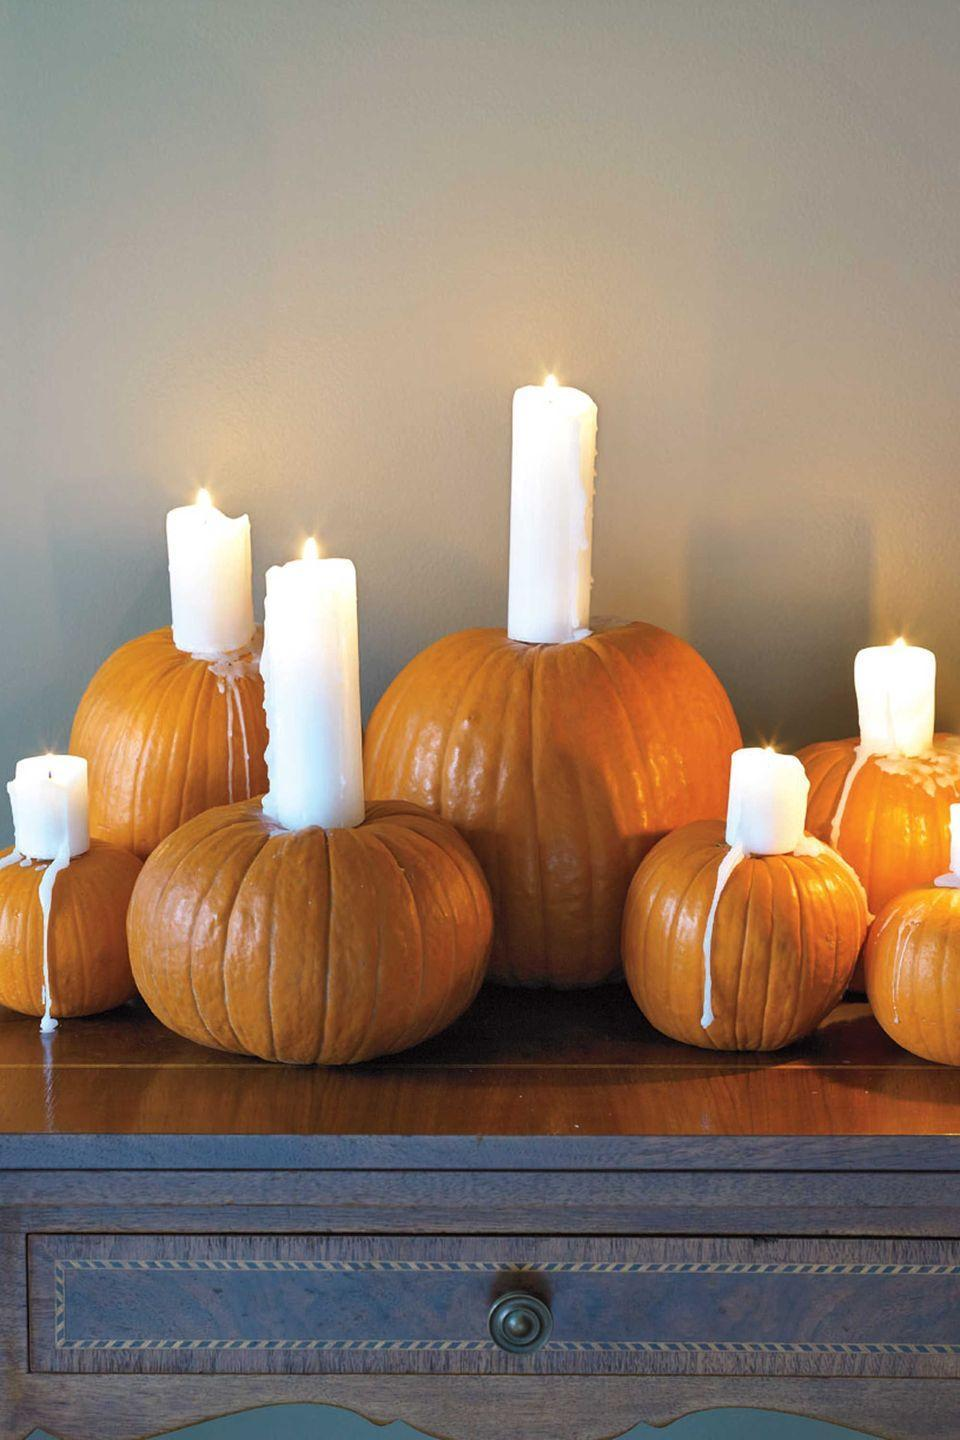 """<p>Feeling spooked? Brighten your space with these classy pumpkins outfitted with drip pillar candles.</p><p><strong><em><a href=""""https://www.womansday.com/home/crafts-projects/how-to/a5950/halloween-craft-how-to-candle-pumpkins-123346/"""" rel=""""nofollow noopener"""" target=""""_blank"""" data-ylk=""""slk:Get the Night Lights tutorial."""" class=""""link rapid-noclick-resp"""">Get the Night Lights tutorial.</a></em></strong></p>"""